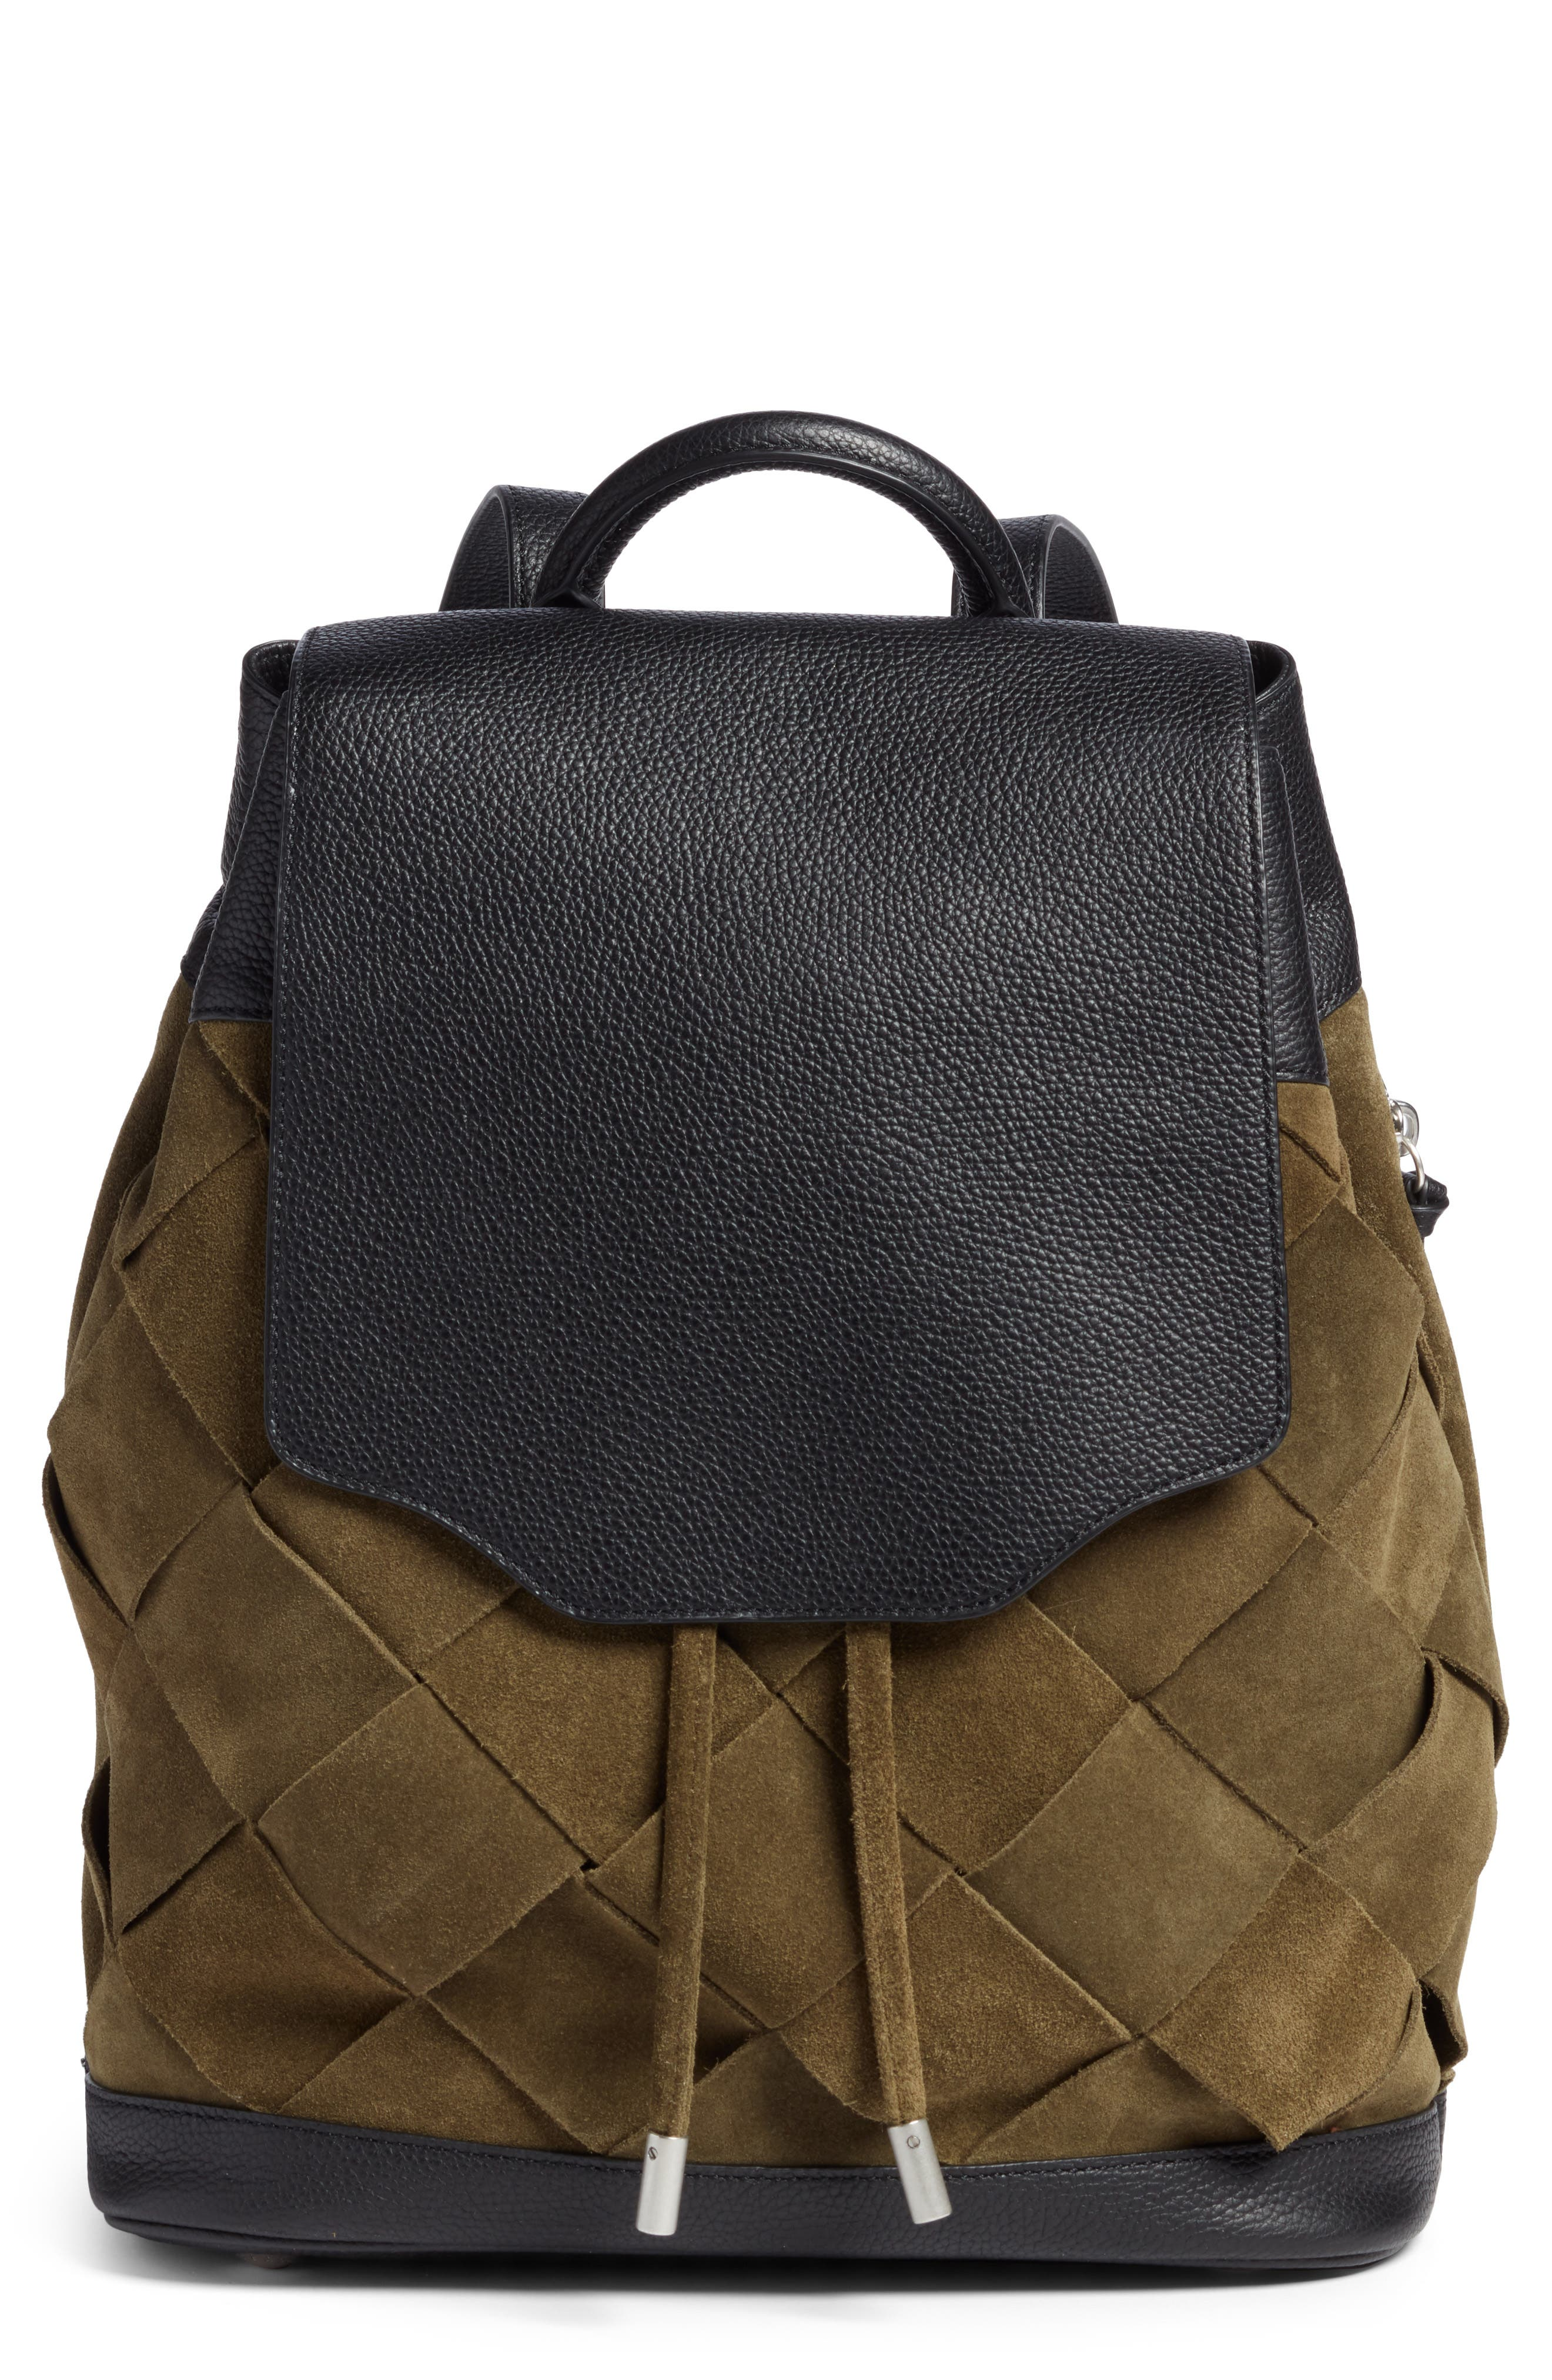 Pilot Suede & Leather Backpack,                         Main,                         color, 300